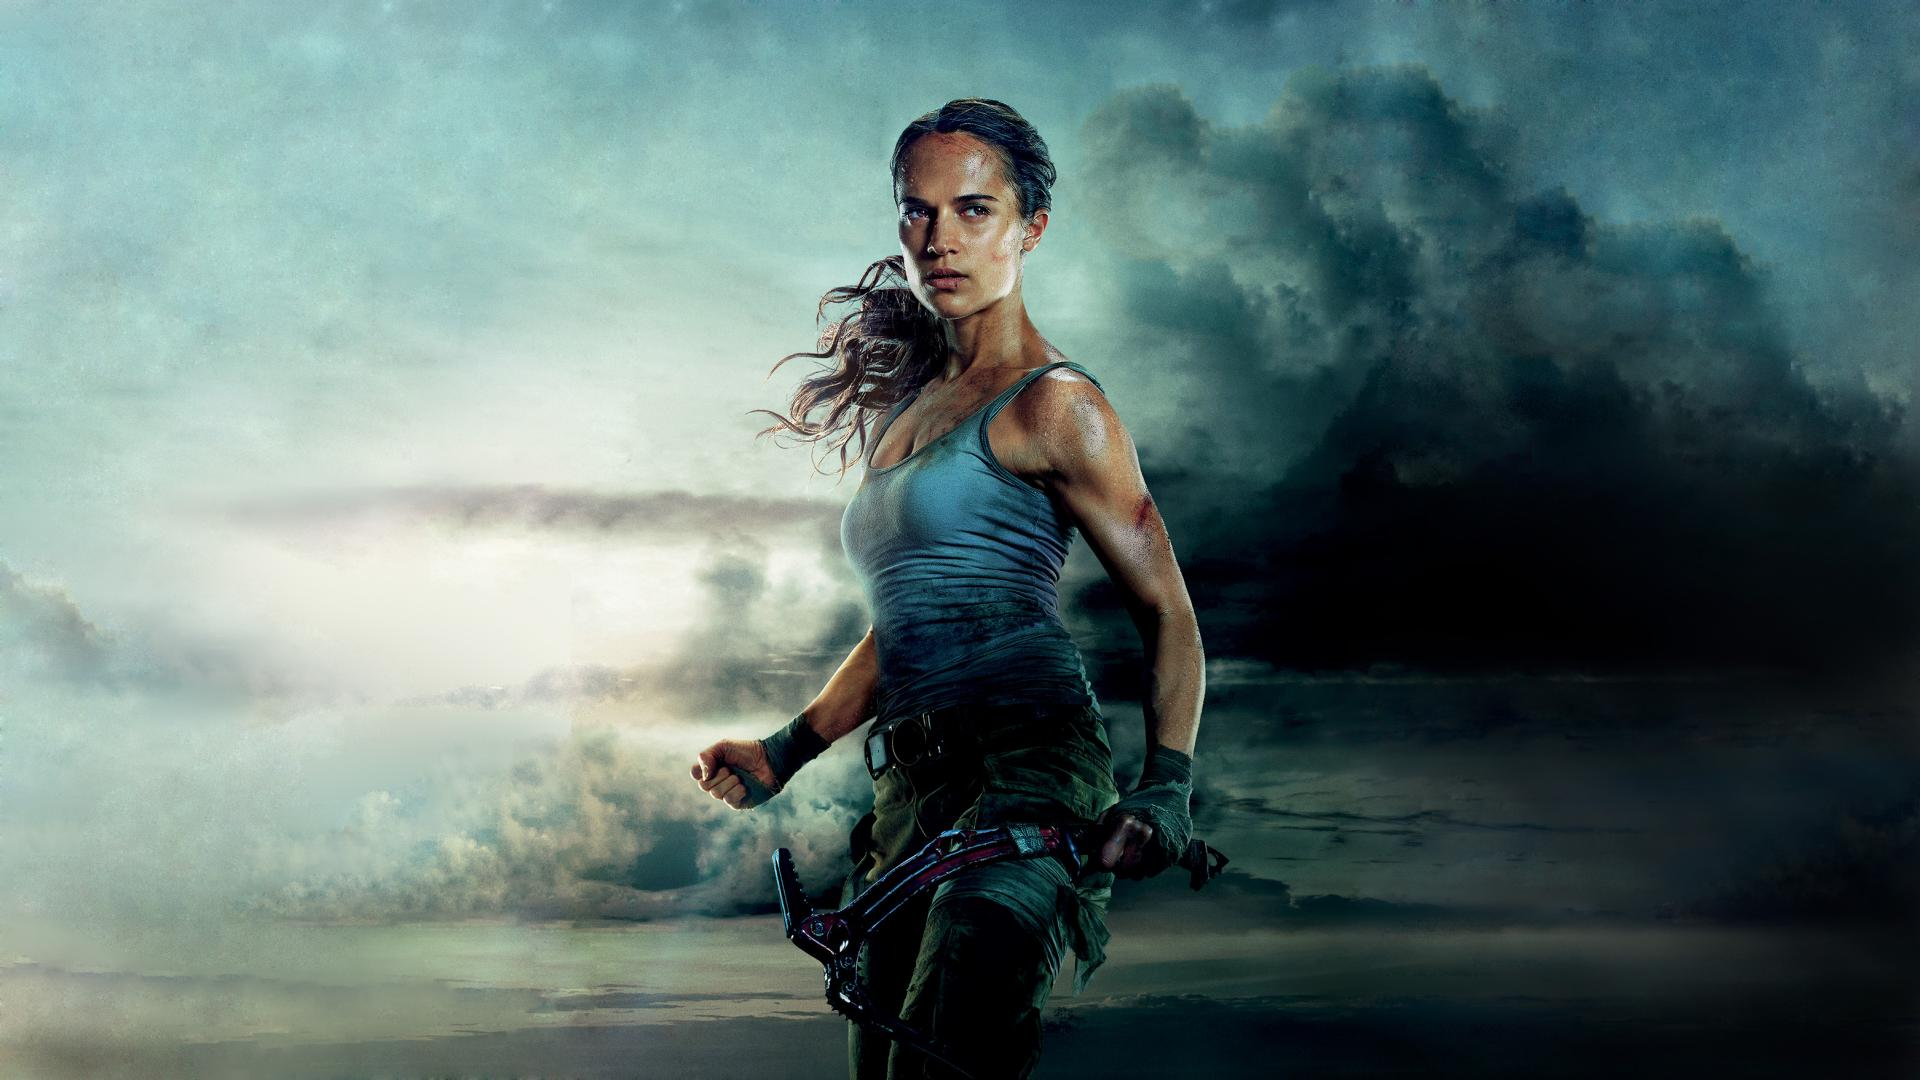 Tomb Raider movie 2018 MMOs Go To the Movies: Ticket Business Model and the Lifespan of an MMORPG